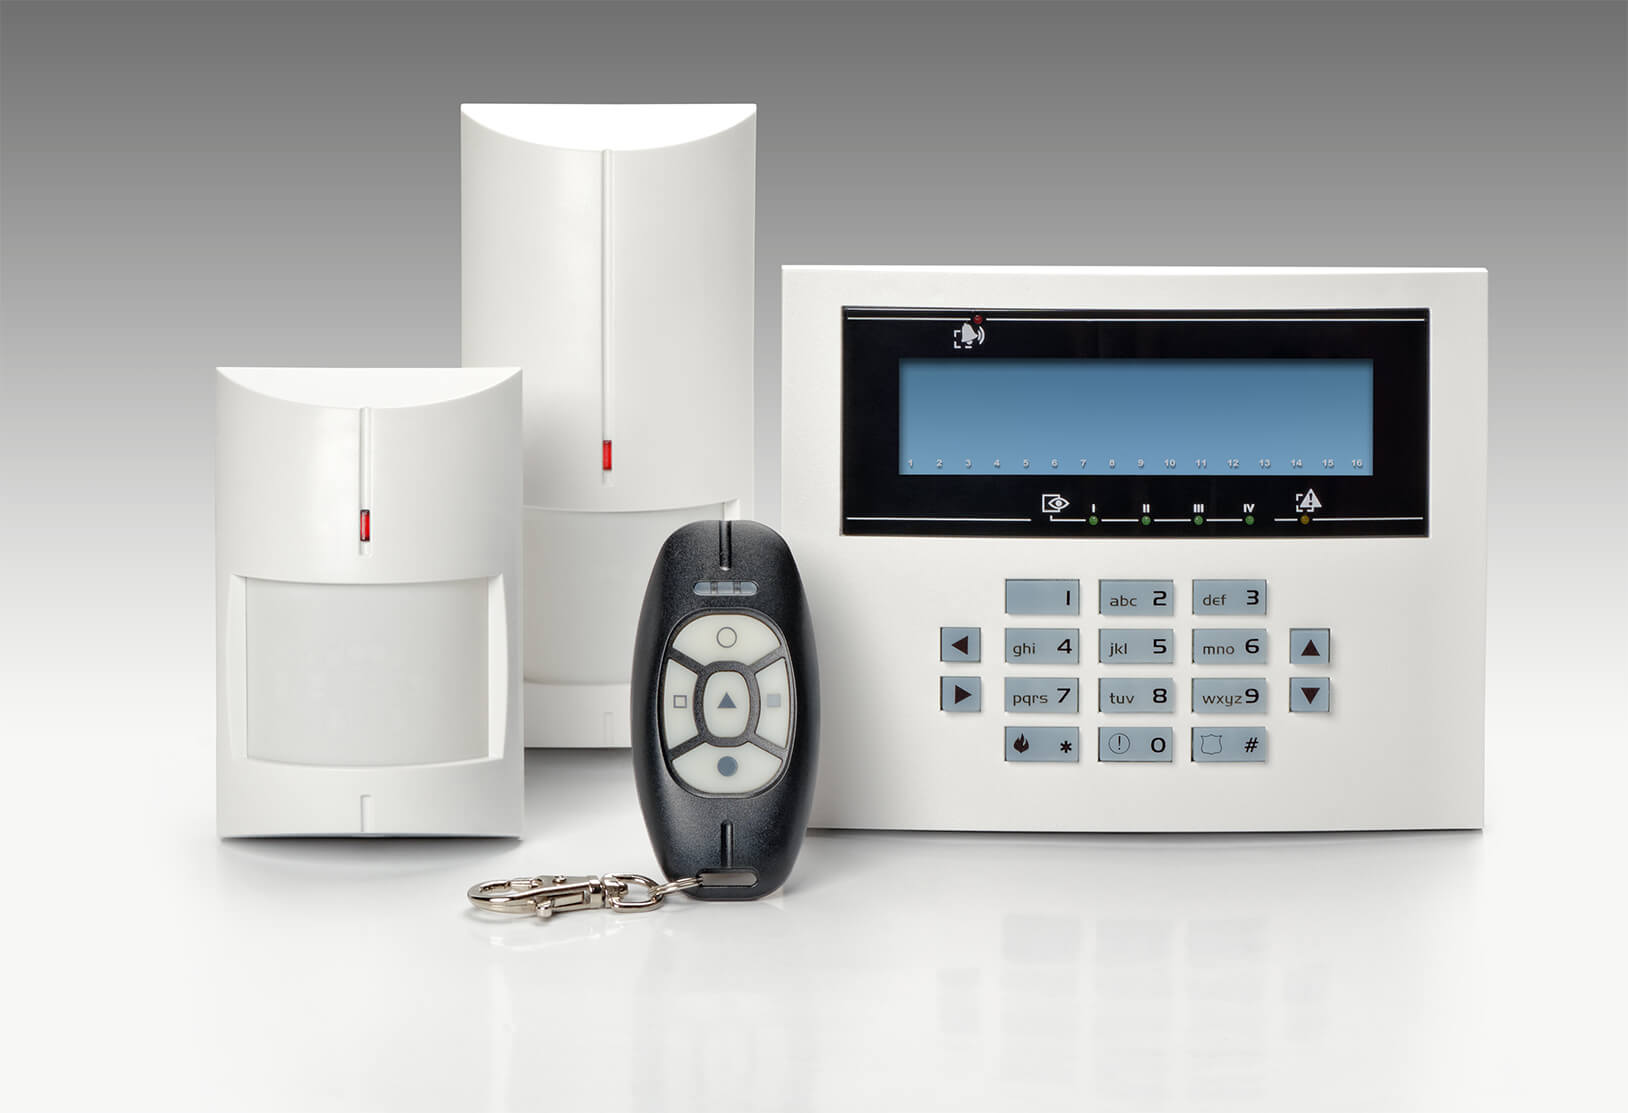 Business & Residential NACOSS Approved Burglar Alarms In Battersea SW12 - Local Battersea SW12 security company.Call 02078872244 - Dedicated to Safety & Security. Companies, shops and homes ..